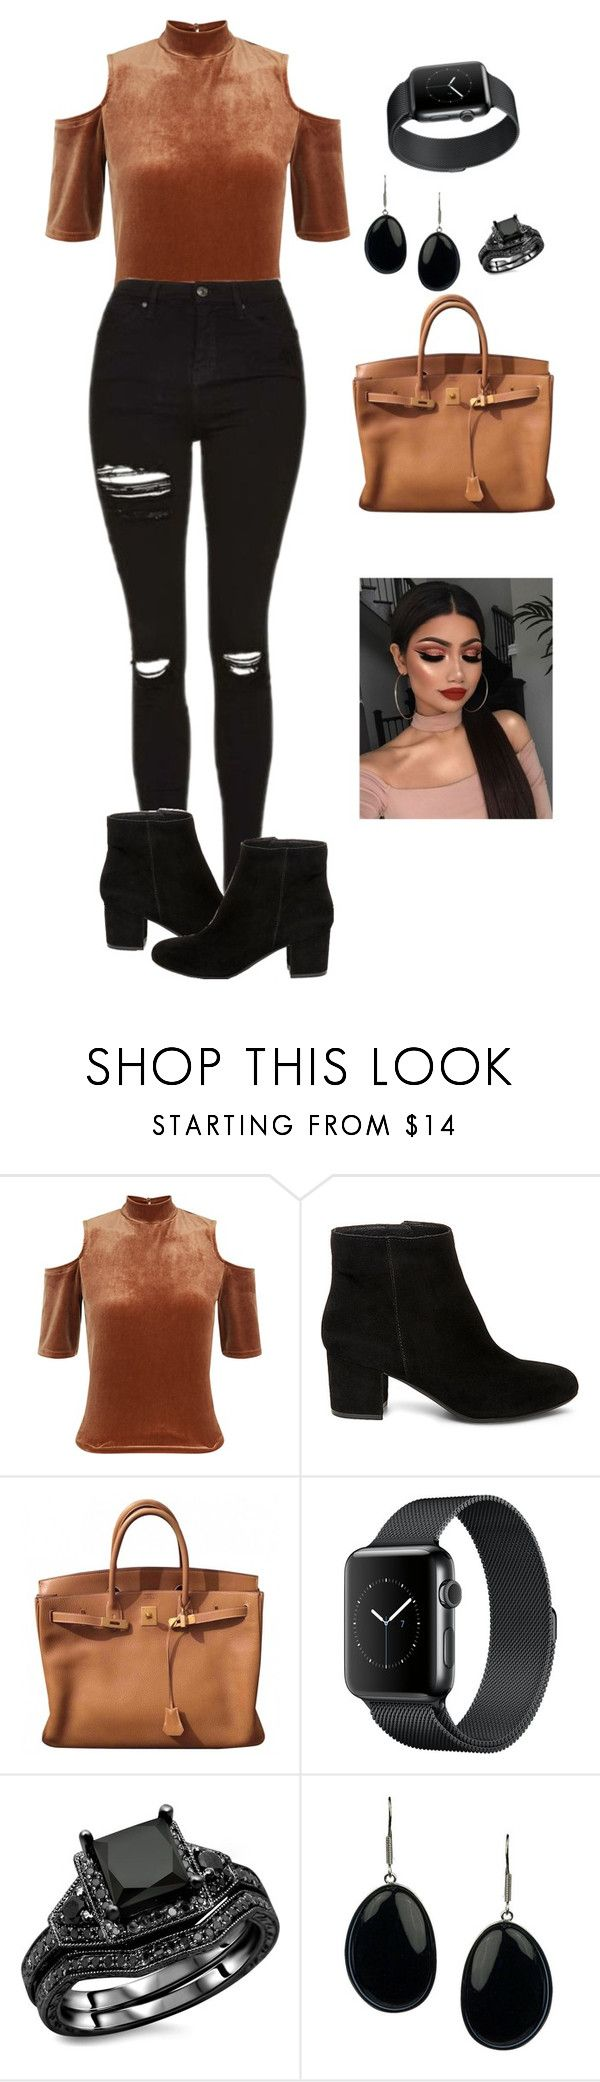 """""""business meeting"""" by accordingtogemia ❤ liked on Polyvore featuring Steve Madden and Hermès"""